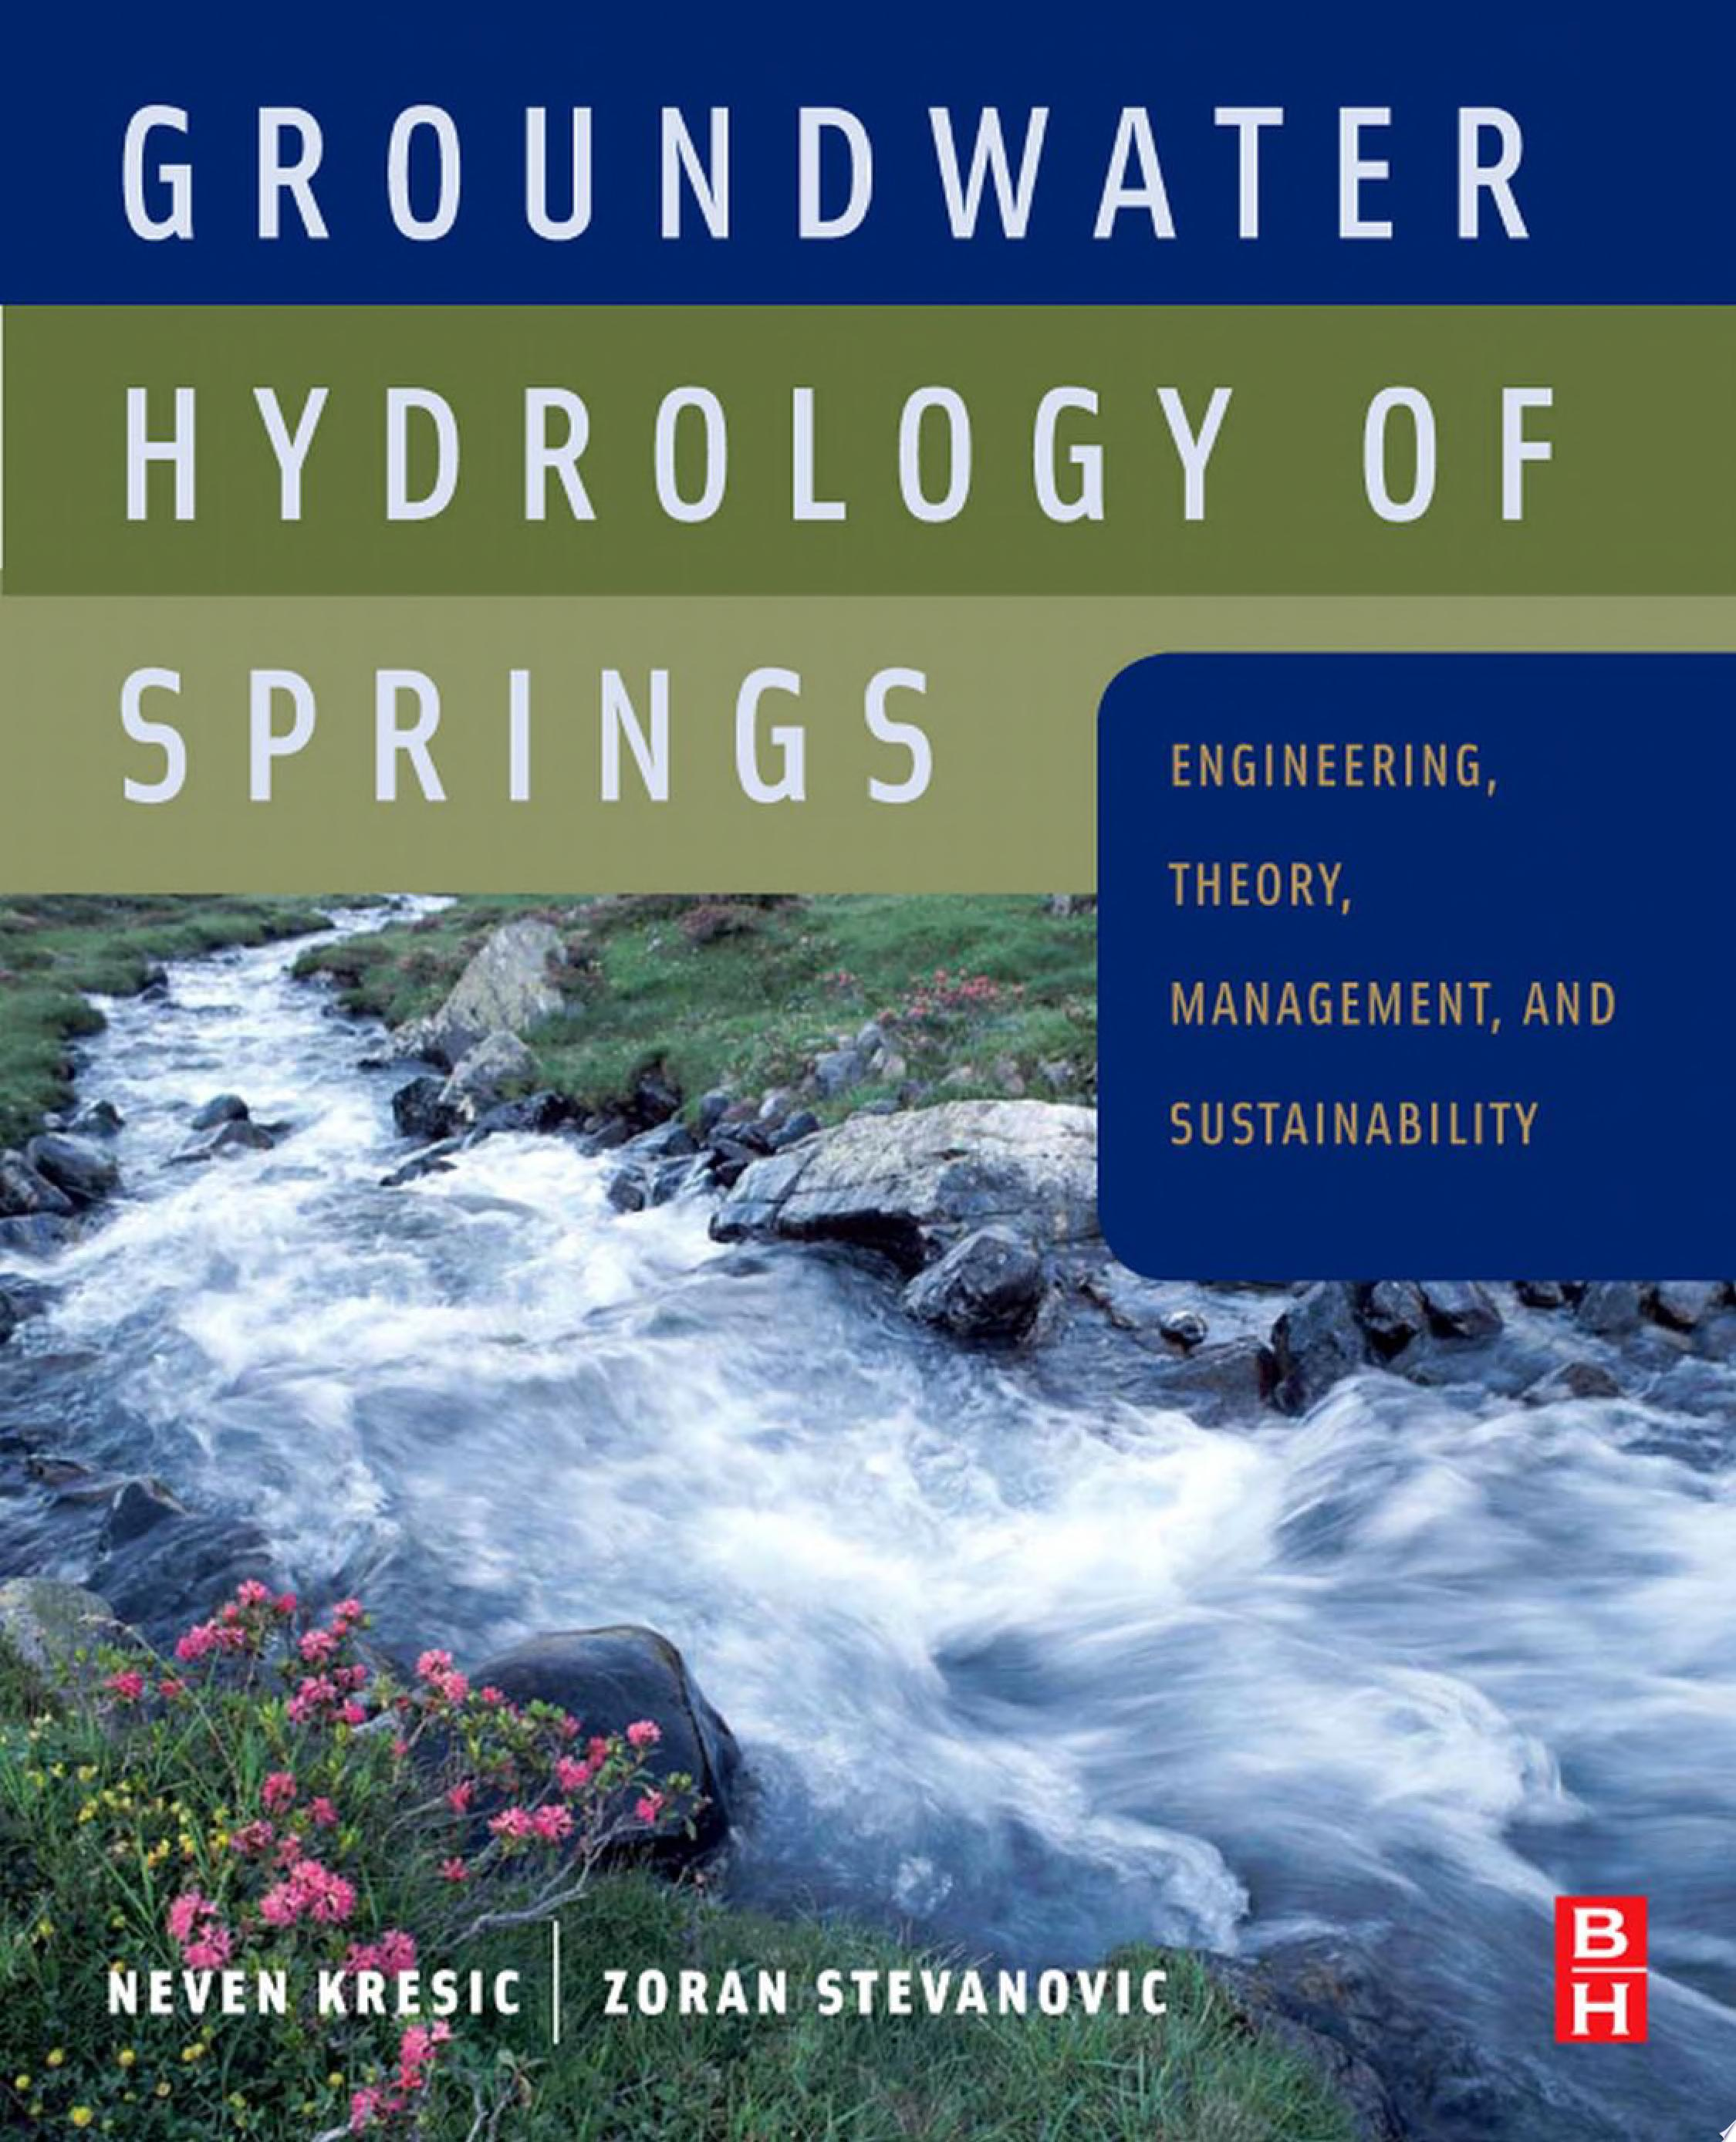 Groundwater Hydrology of Springs